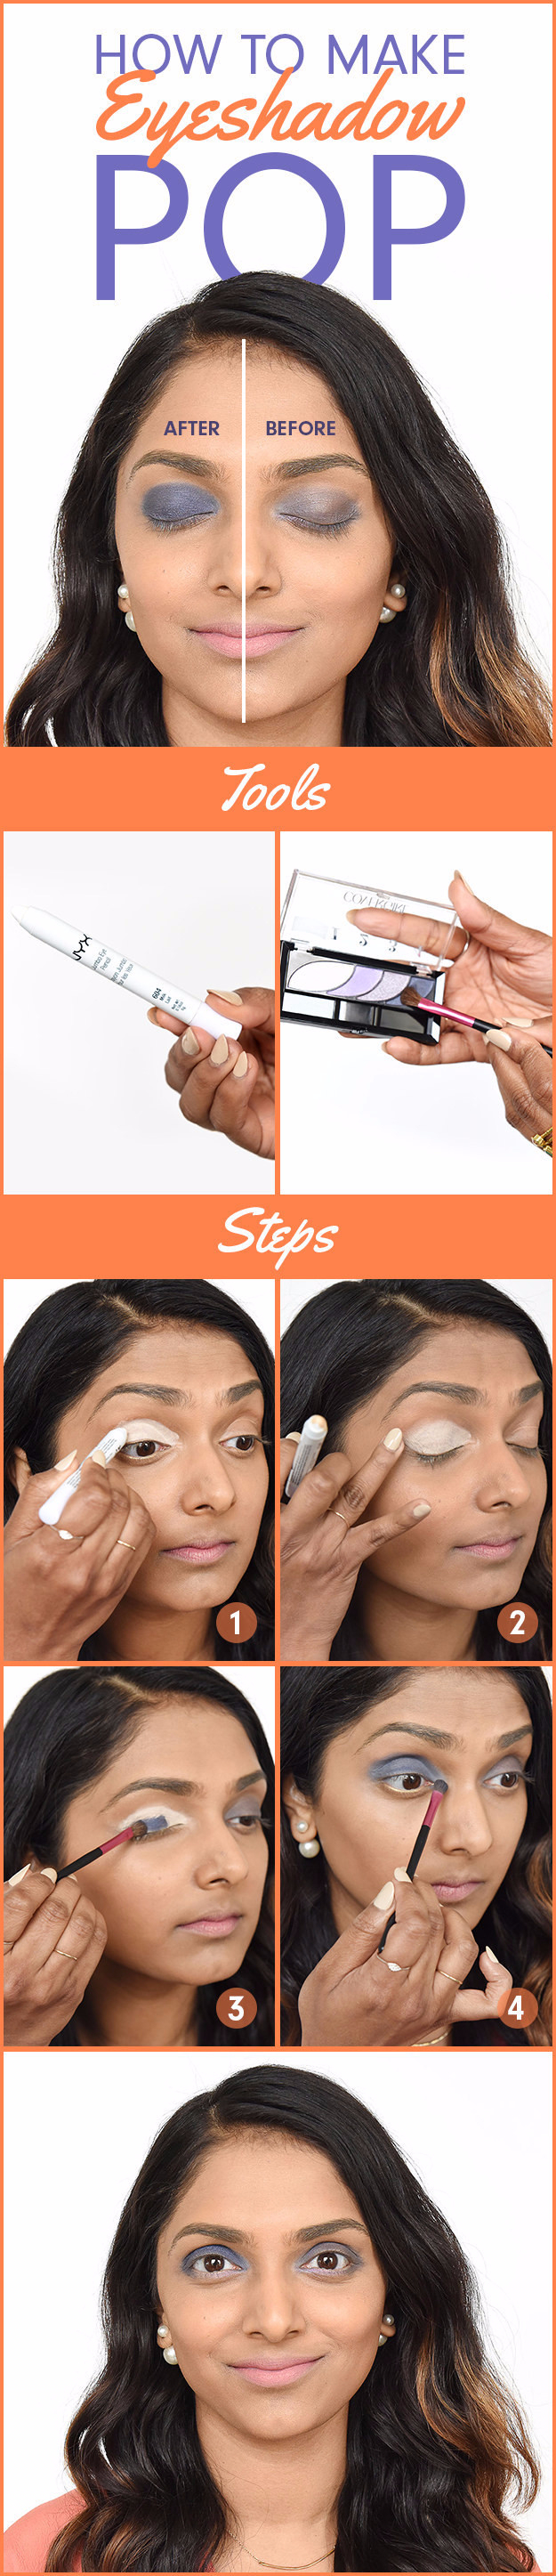 Cool DIY Makeup Hacks for Quick and Easy Beauty Ideas - Make Your Eyeshadow Pop - How To Fix Broken Makeup, Tips and Tricks for Mascara and Eye Liner, Lipstick and Foundation Tutorials - Fast Do It Yourself Beauty Projects for Women http://diyjoy.com/makeup-hacks